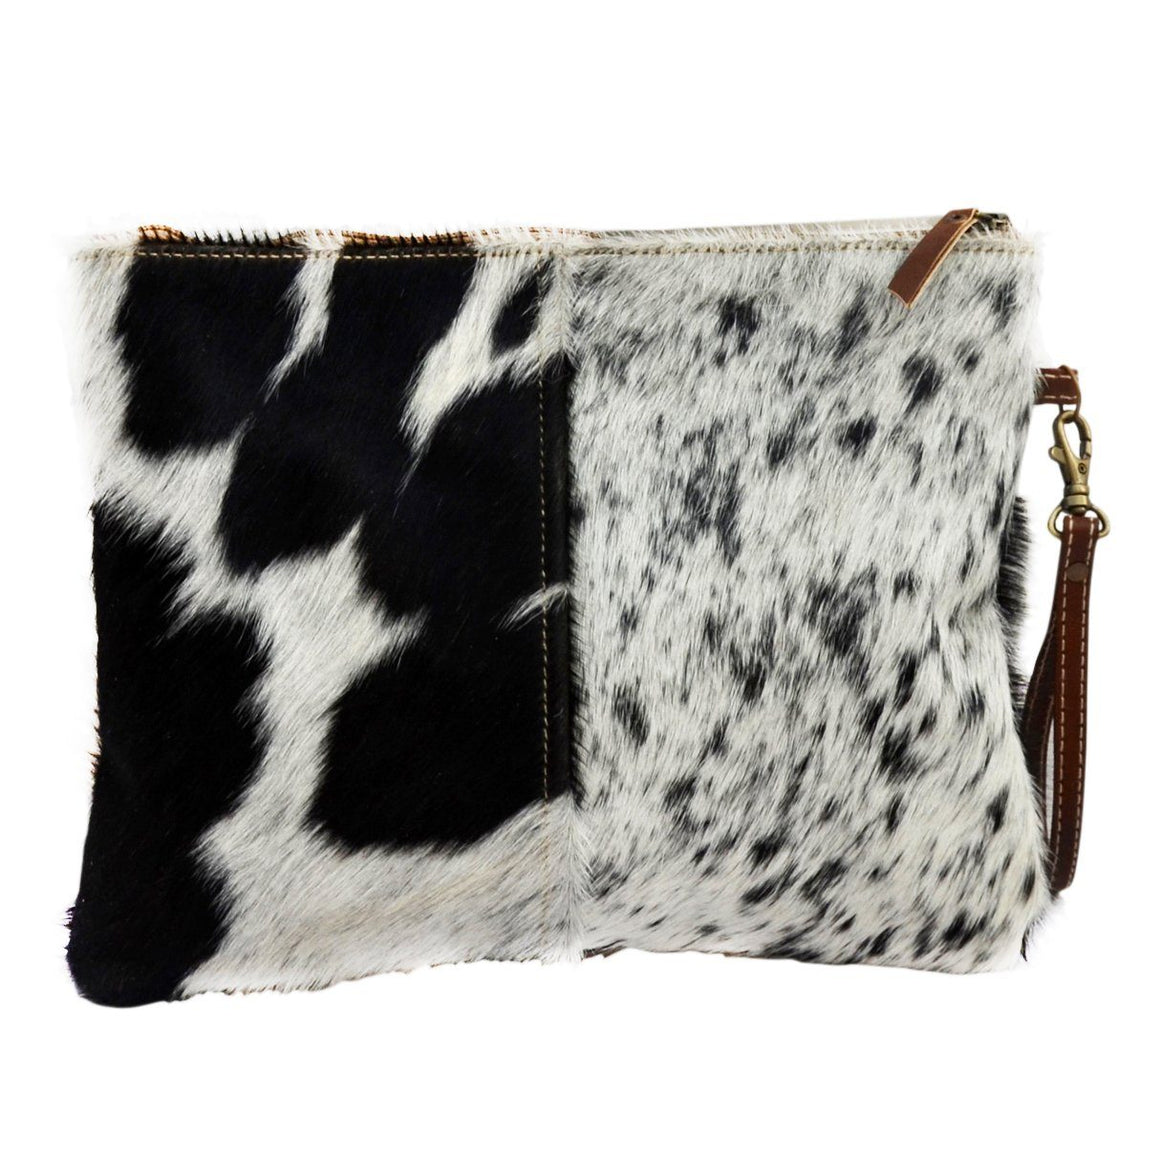 EVERYDAY COWHIDE ZIP CLUTCH BAG Philbee Interiors